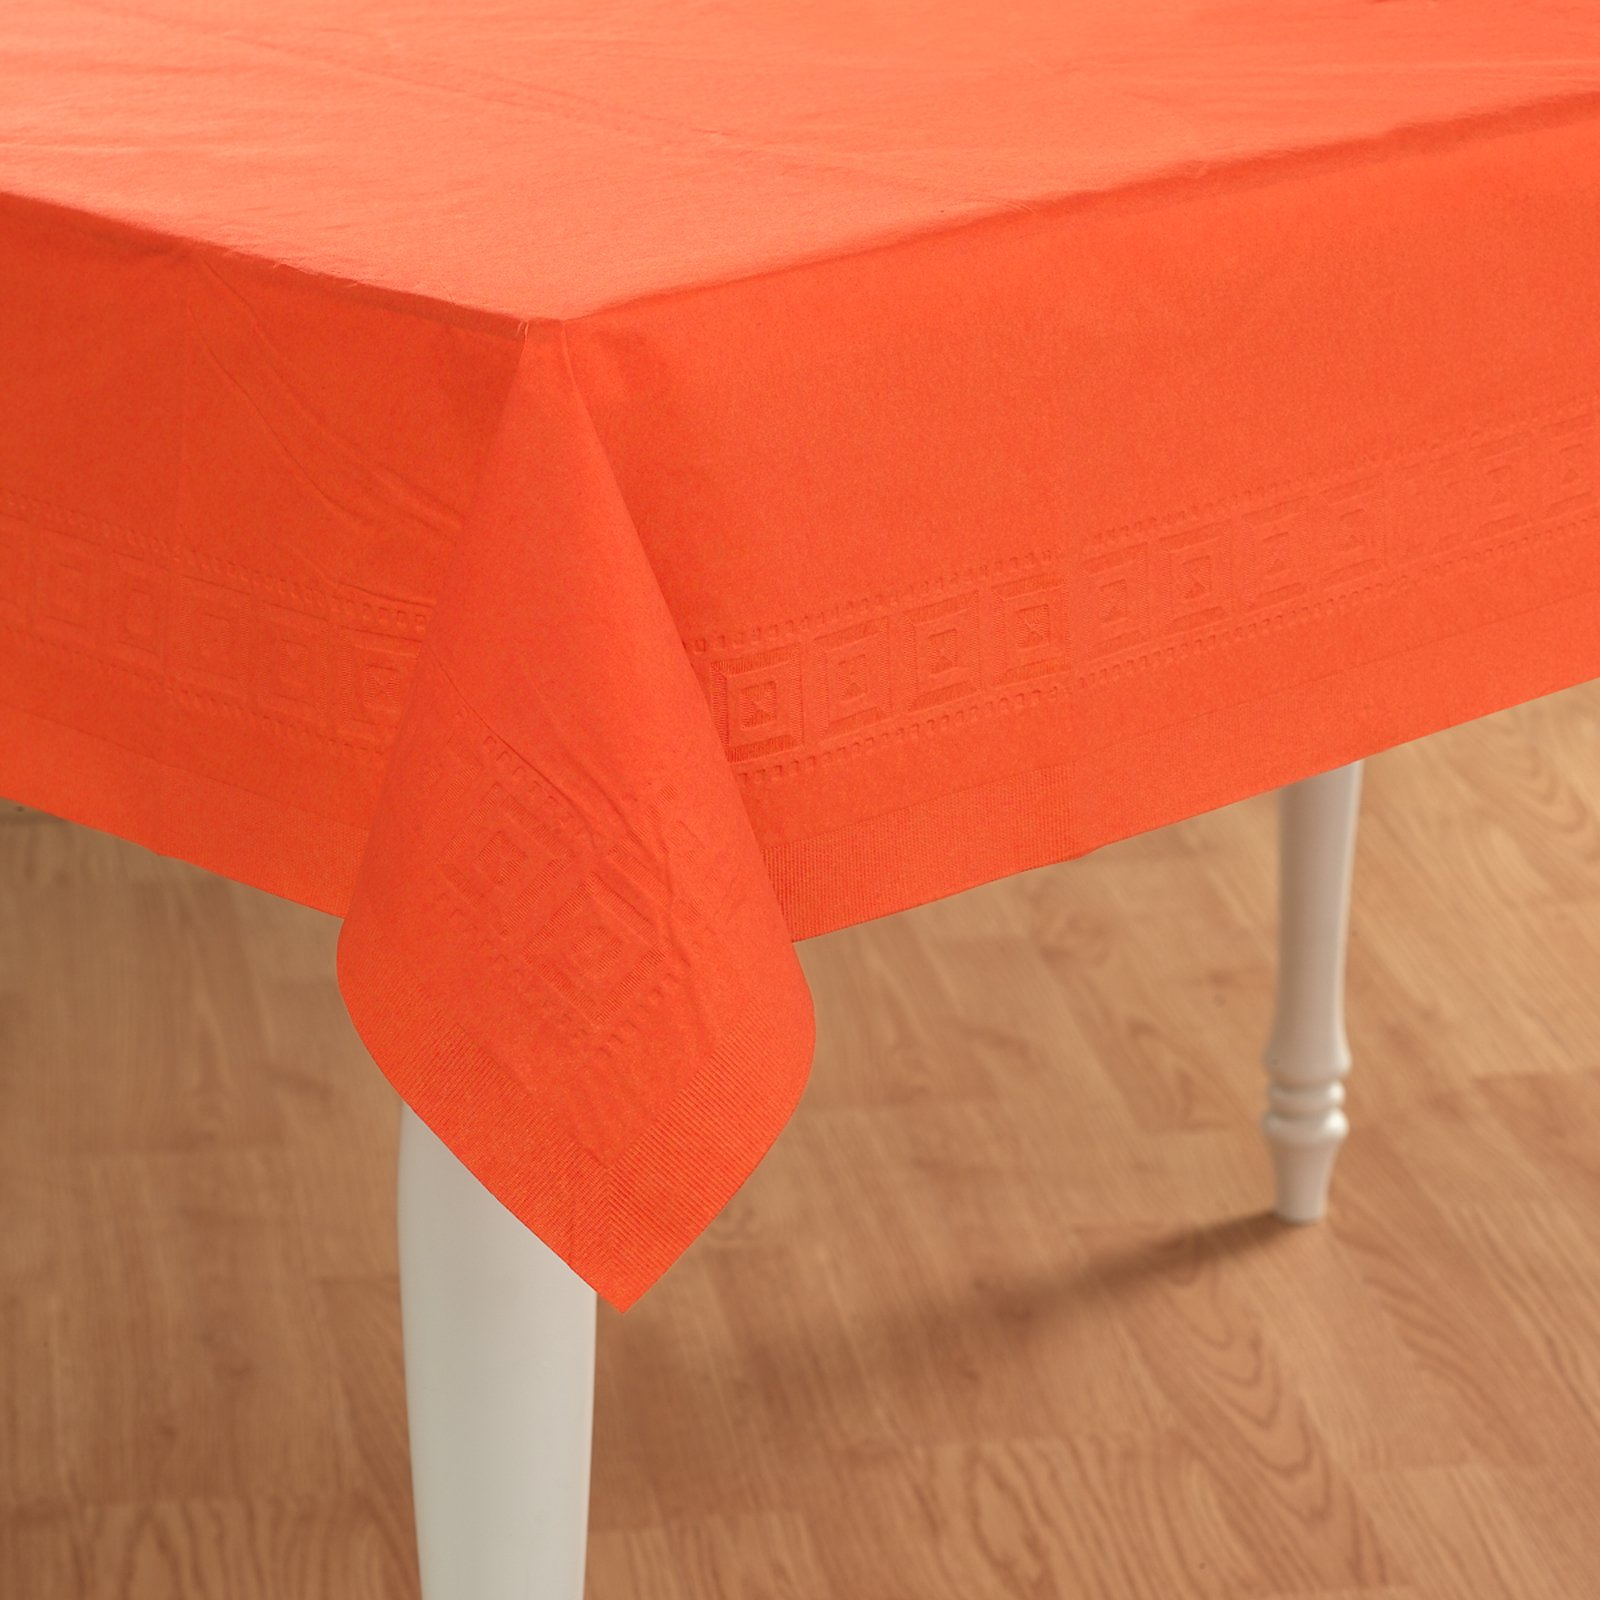 Sunkissed Orange (Orange) Paper Tablecover